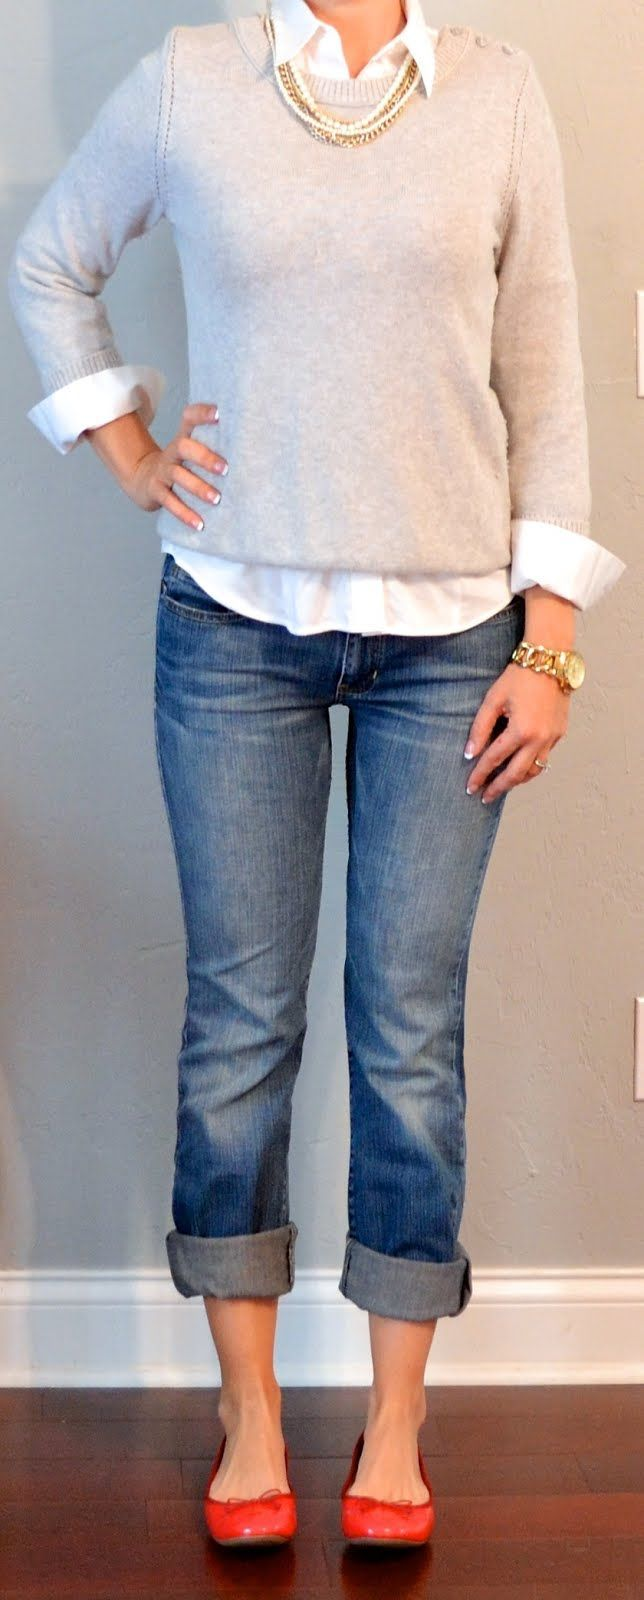 The Casual Edit - Chic Basics For Women Over 40 | Outfit posts ...